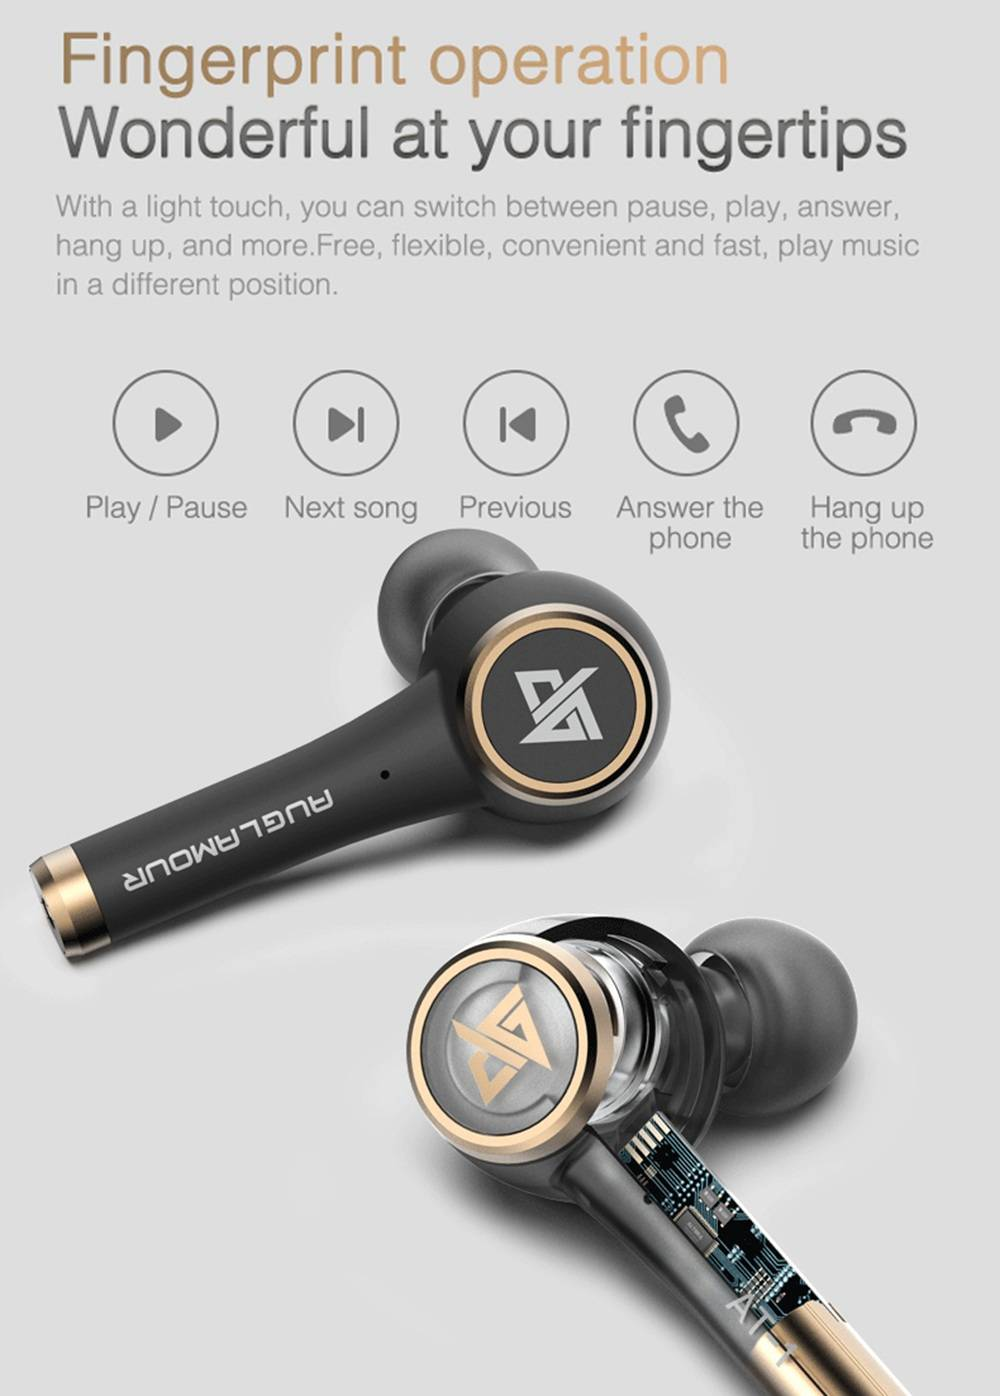 Auglamour AT-1 Bluetooth 5.0 TWS Earphone Independent Usage Binaural Call 24 Standby Time IPX5 - Black